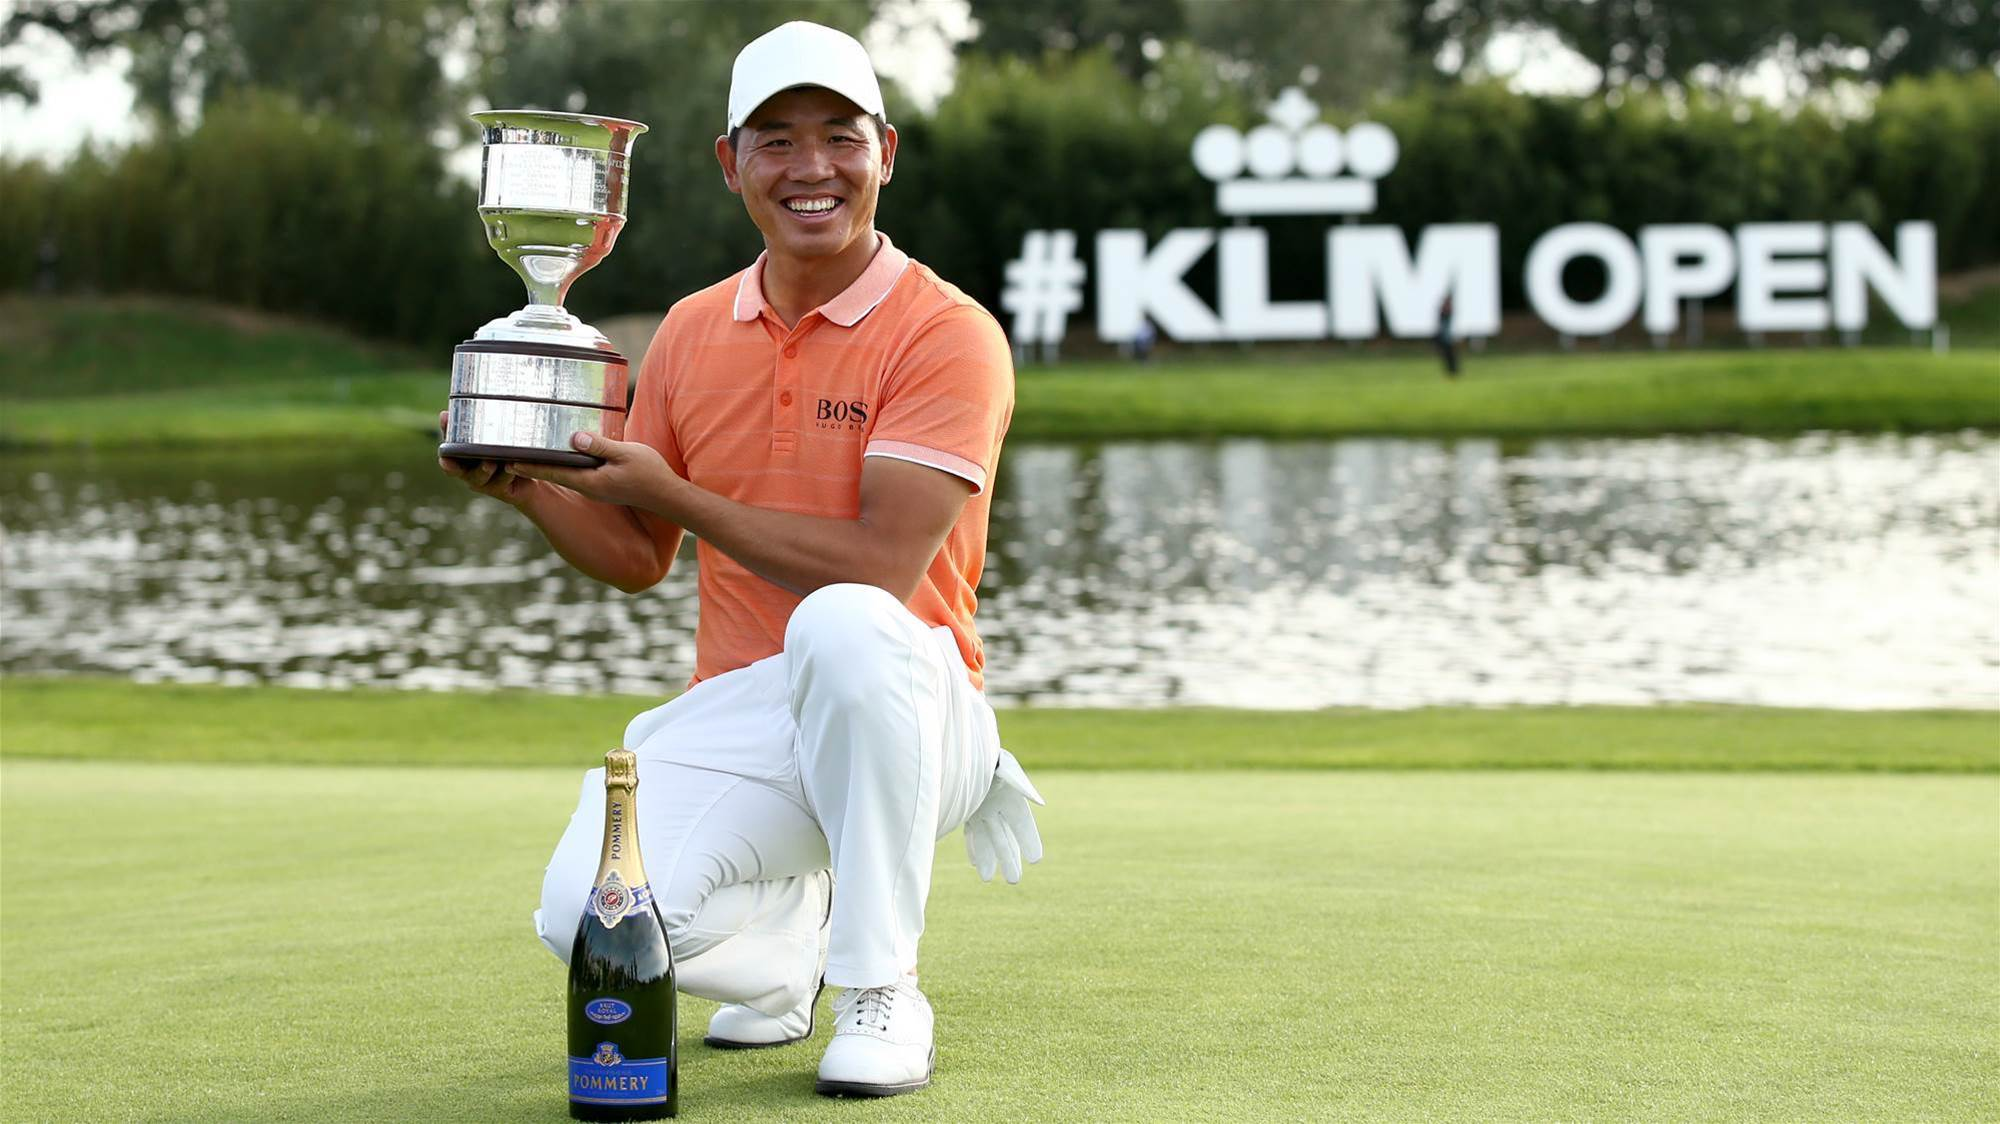 European Tour: Ashun Wu claims KLM Open